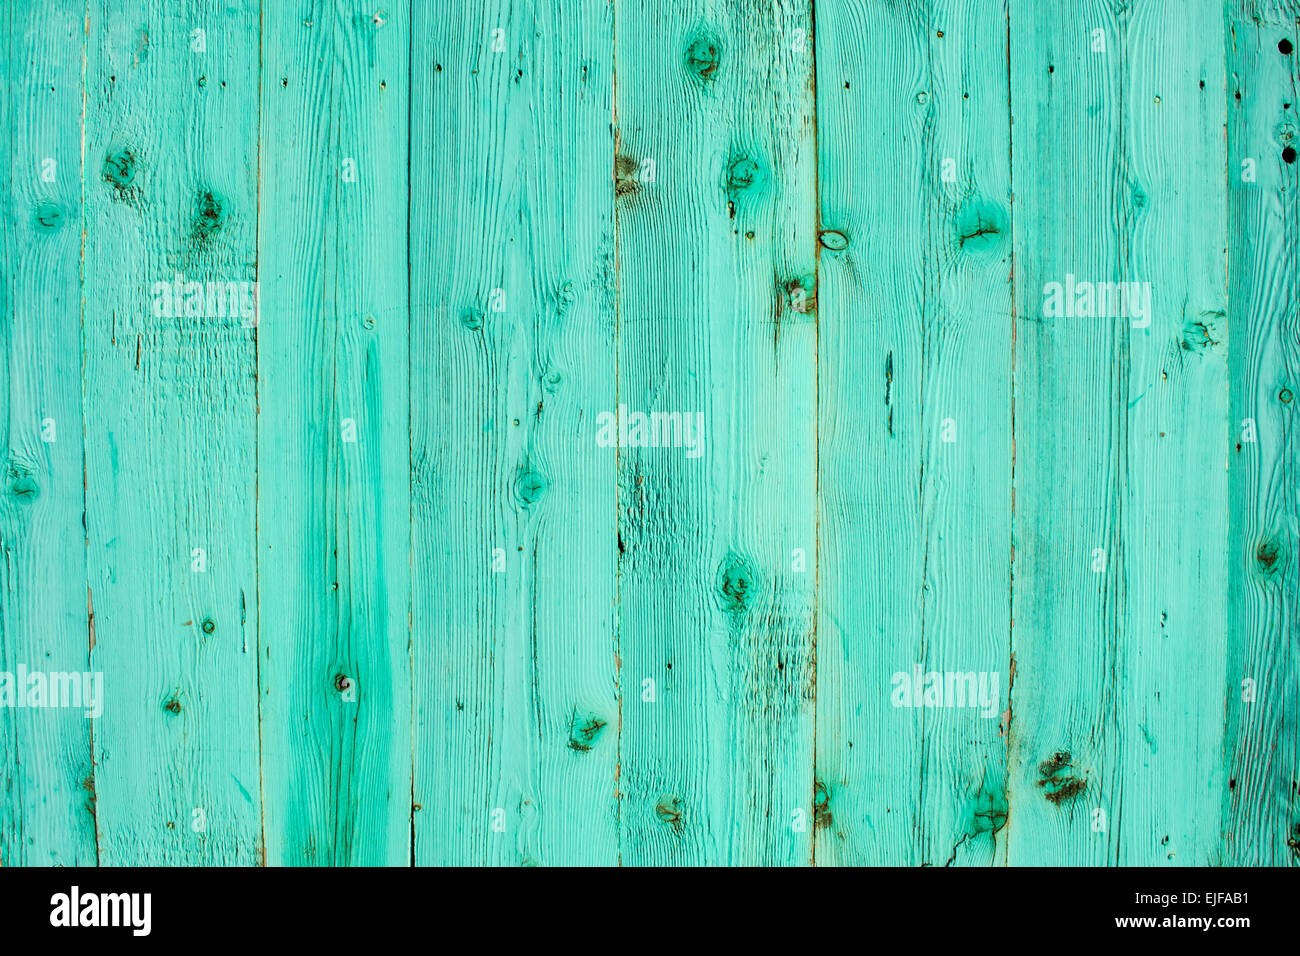 Blue stained wooden planks with knots - Stock Image